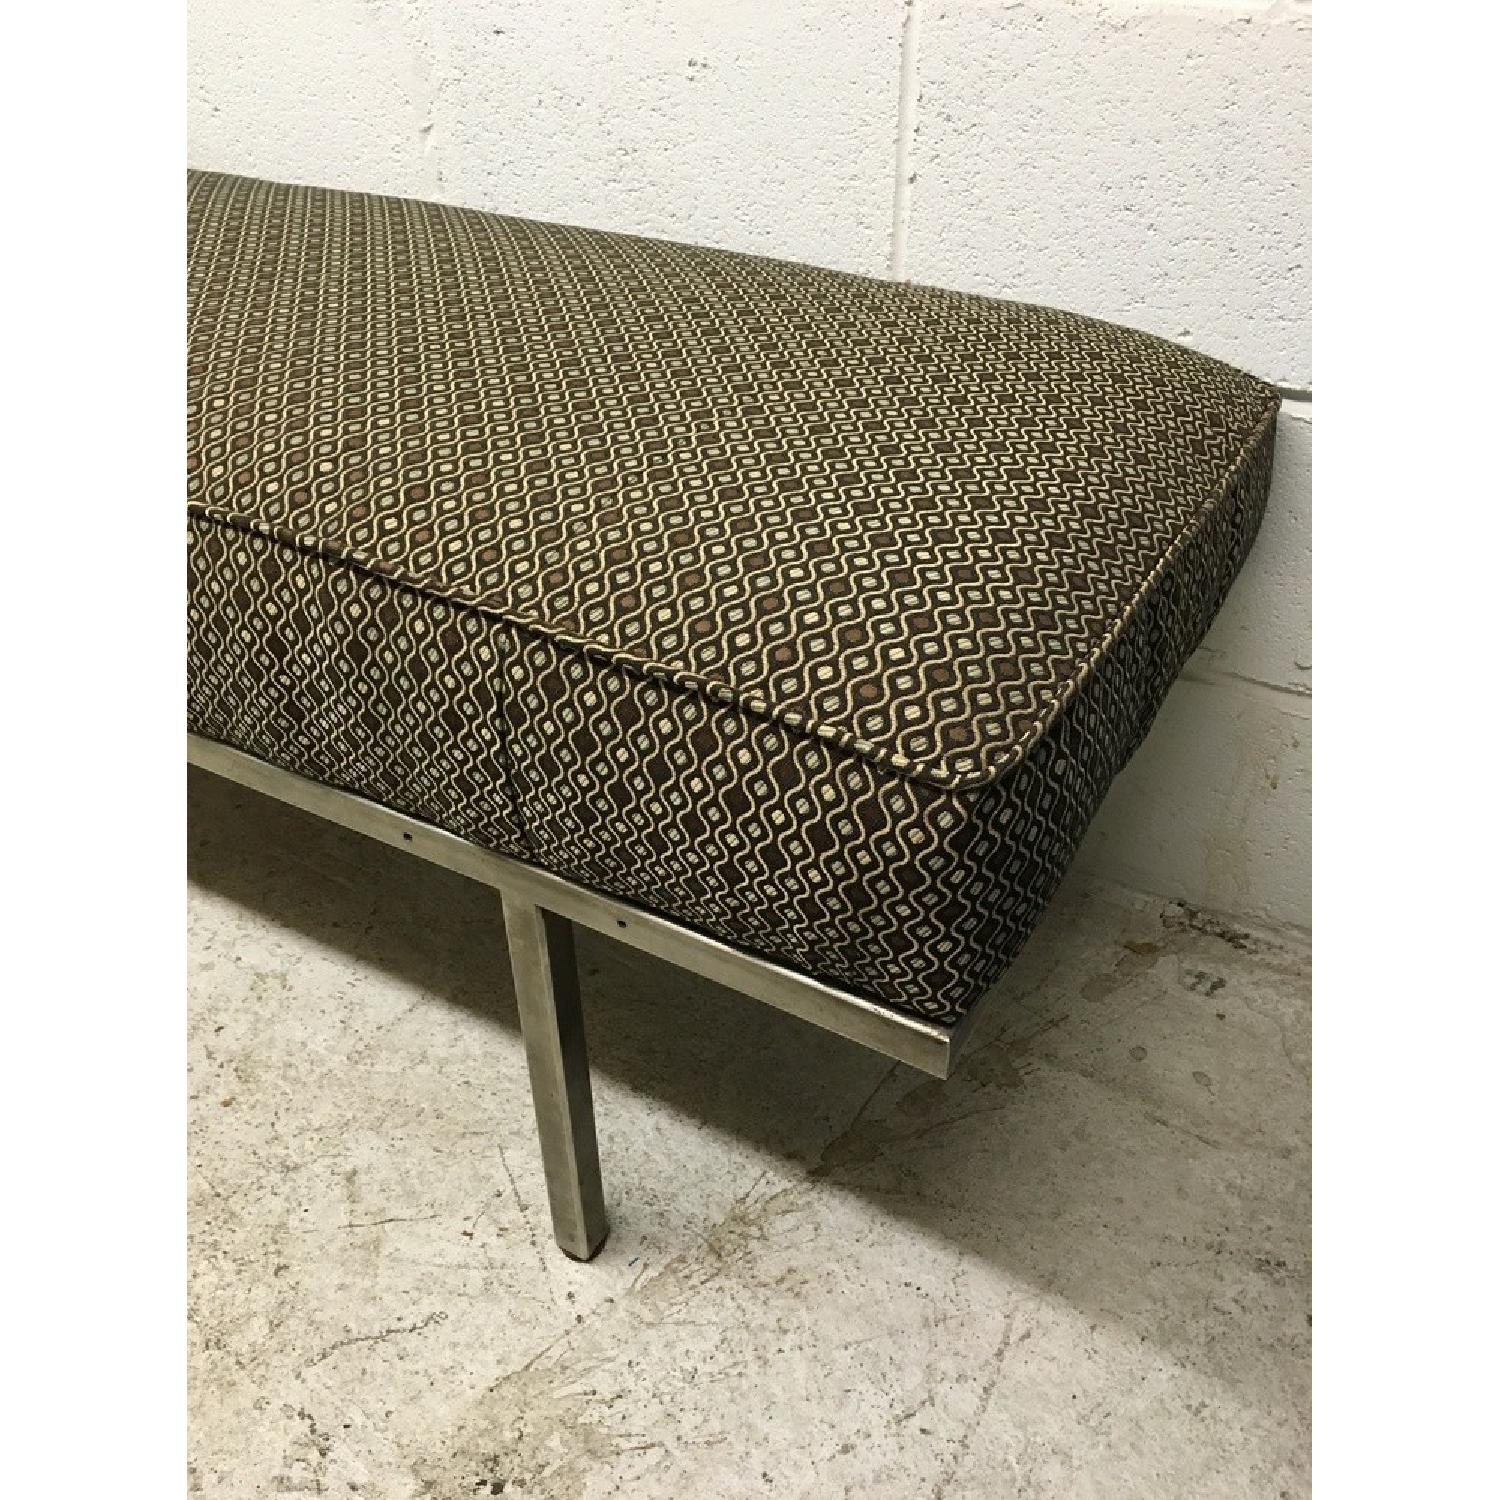 Knoll Style Mid Century Modern Chrome Bench - image-2